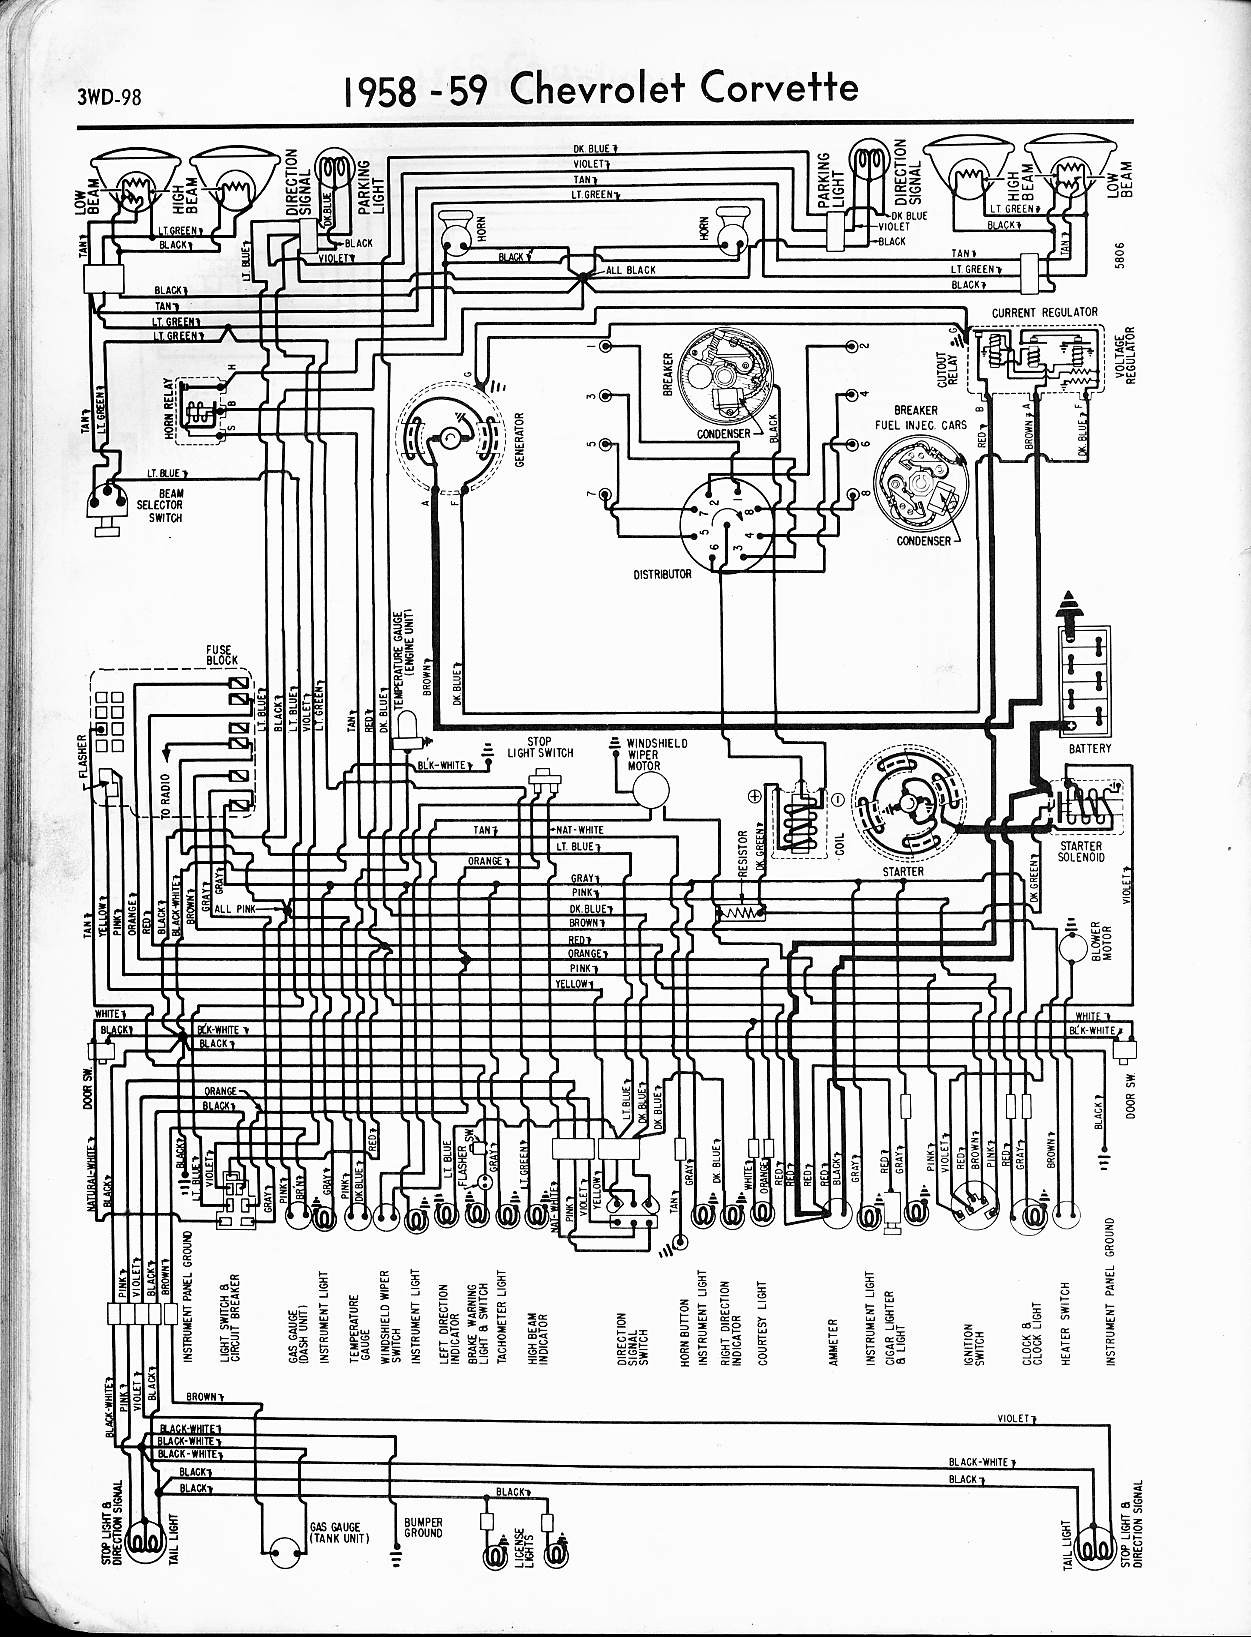 1960 chevrolet v6 biscayne belair and impala wiring diagram wire rh masinisa co 1960 chevy impala ignition wiring diagram 2008 chevy impala wiring diagram